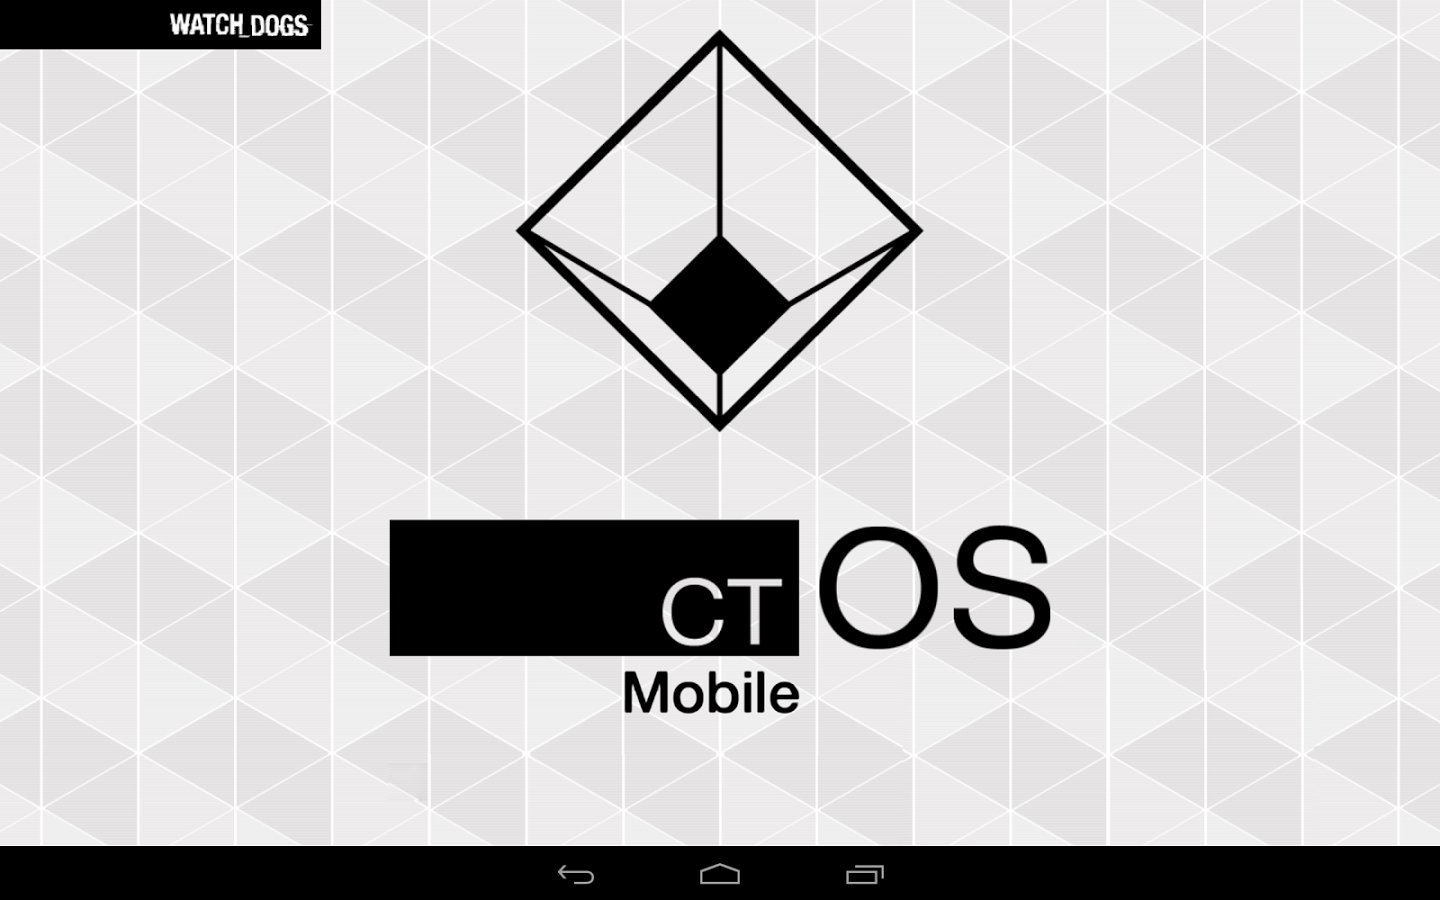 Watch Dogs Companion: ctOS Android image 5